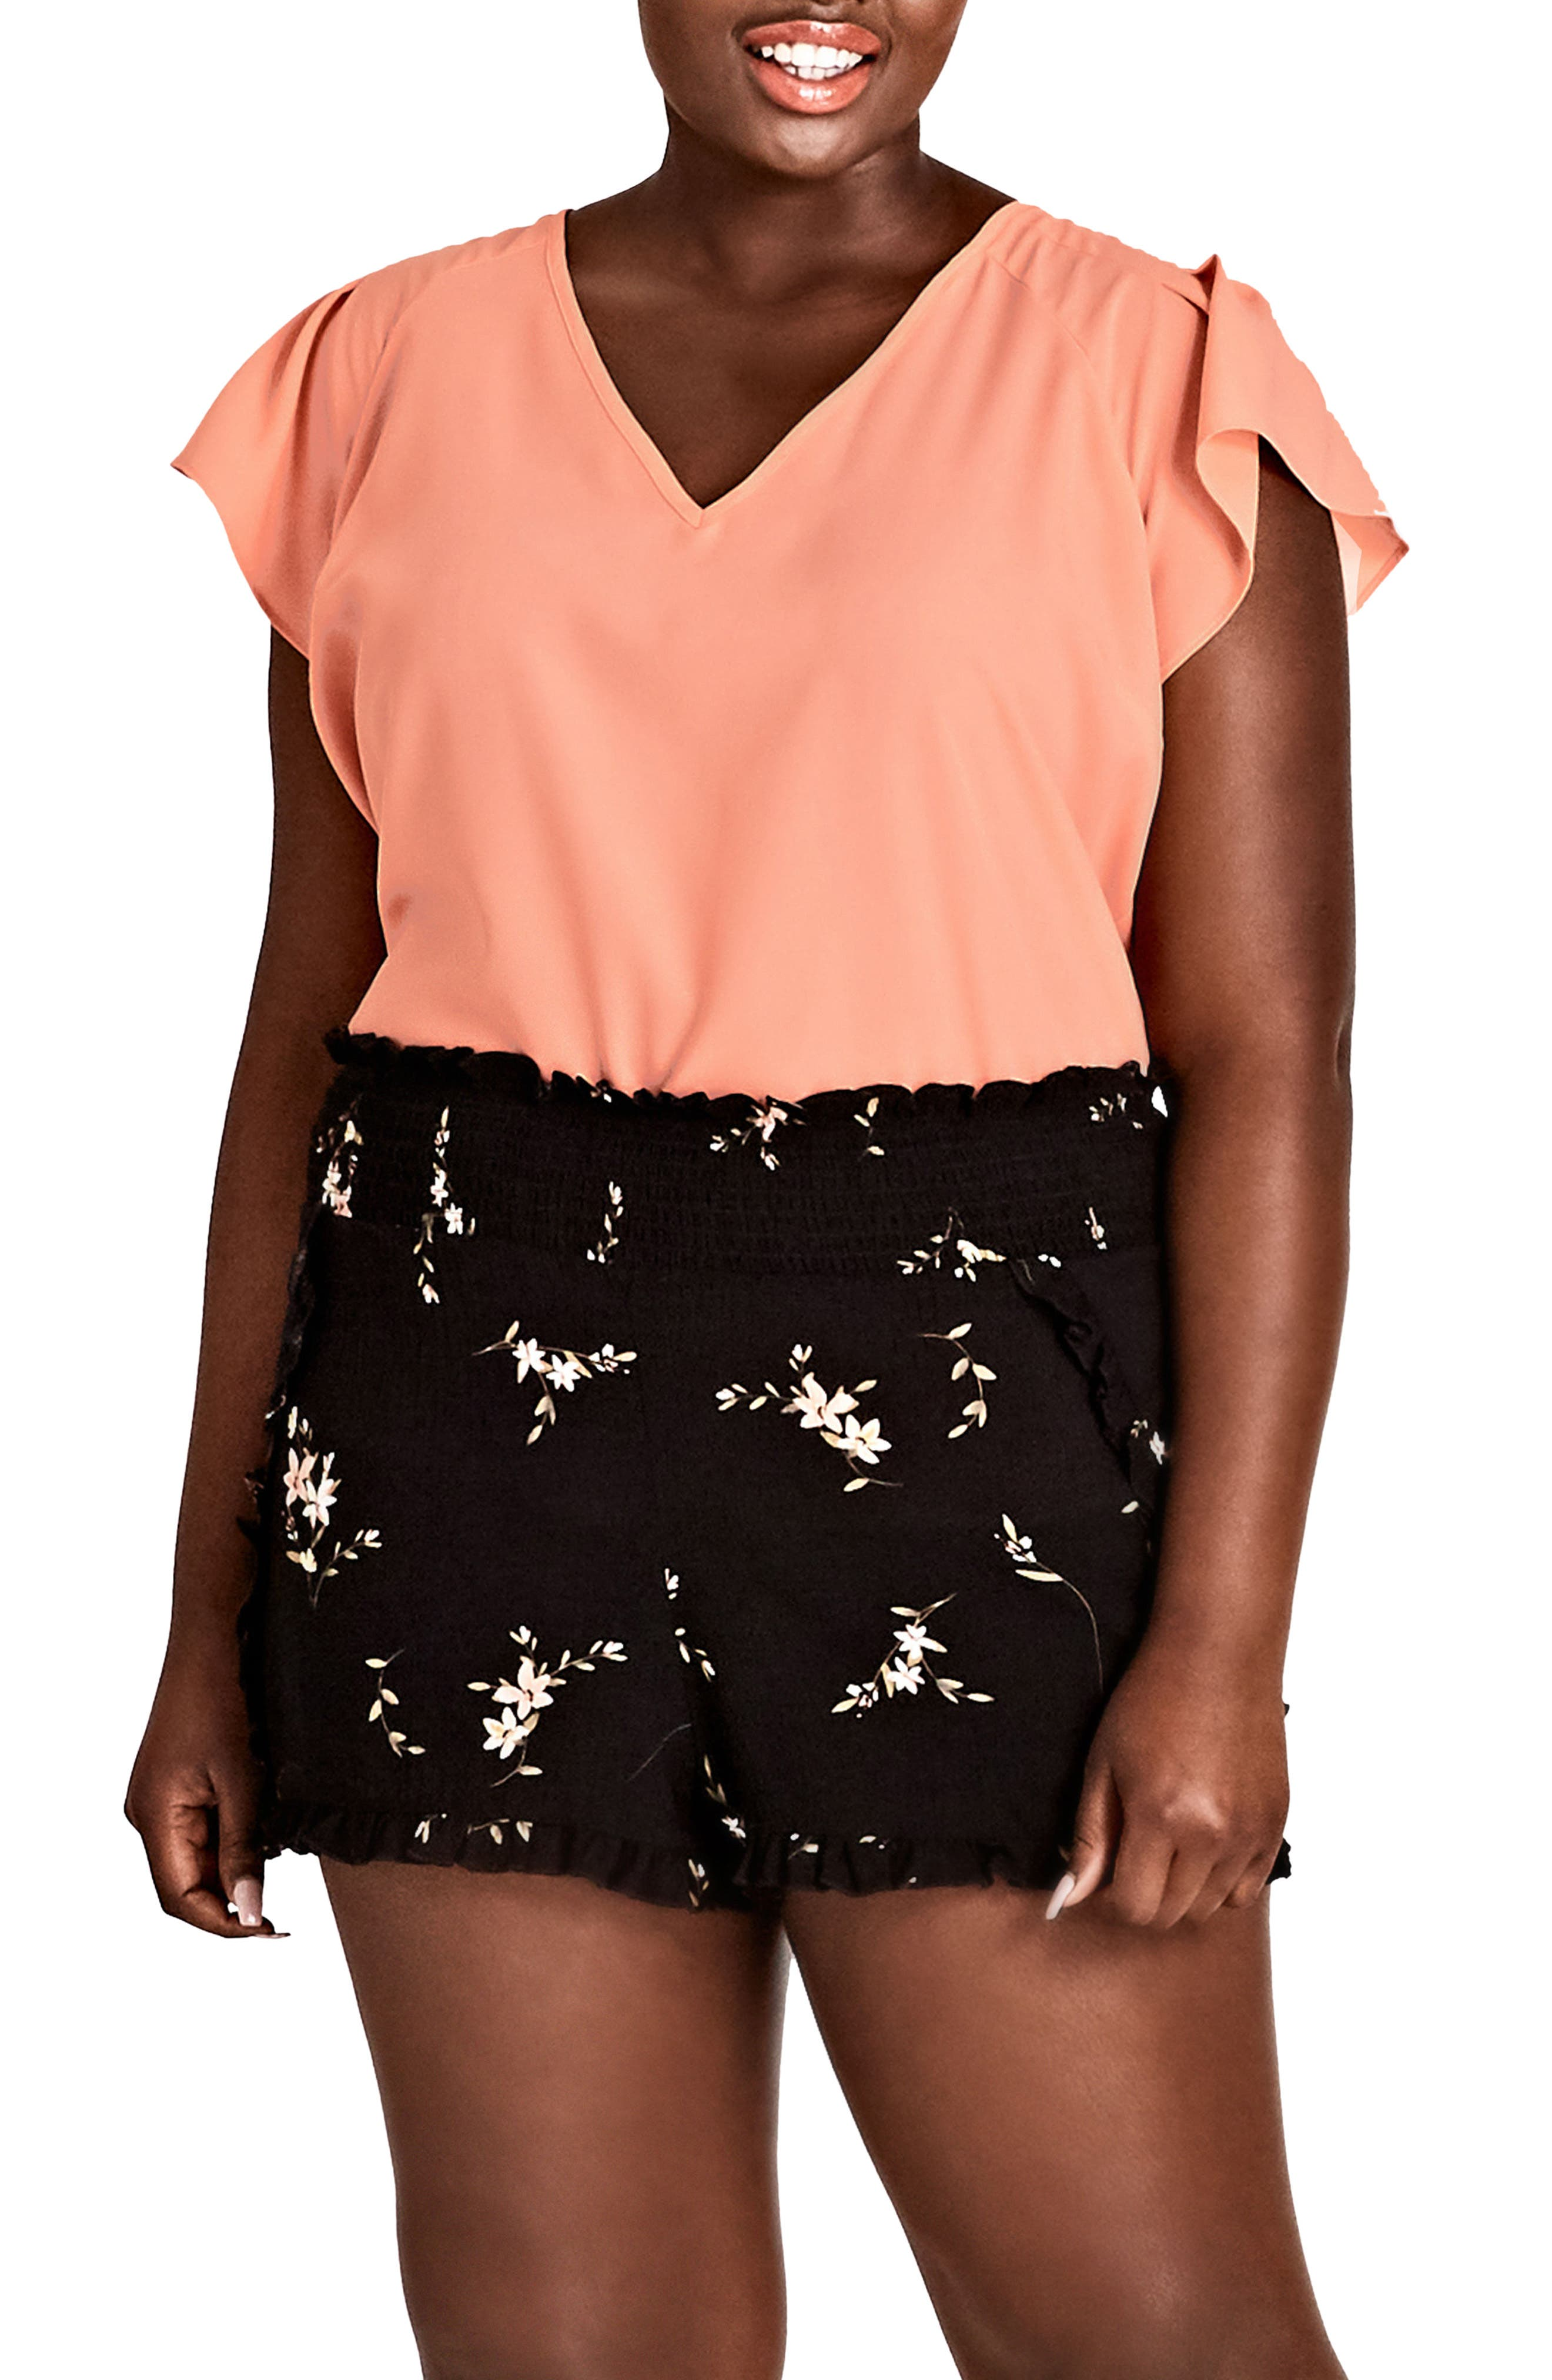 Aerial Floral Pull-On Shorts,                             Alternate thumbnail 3, color,                             Aerial Floral